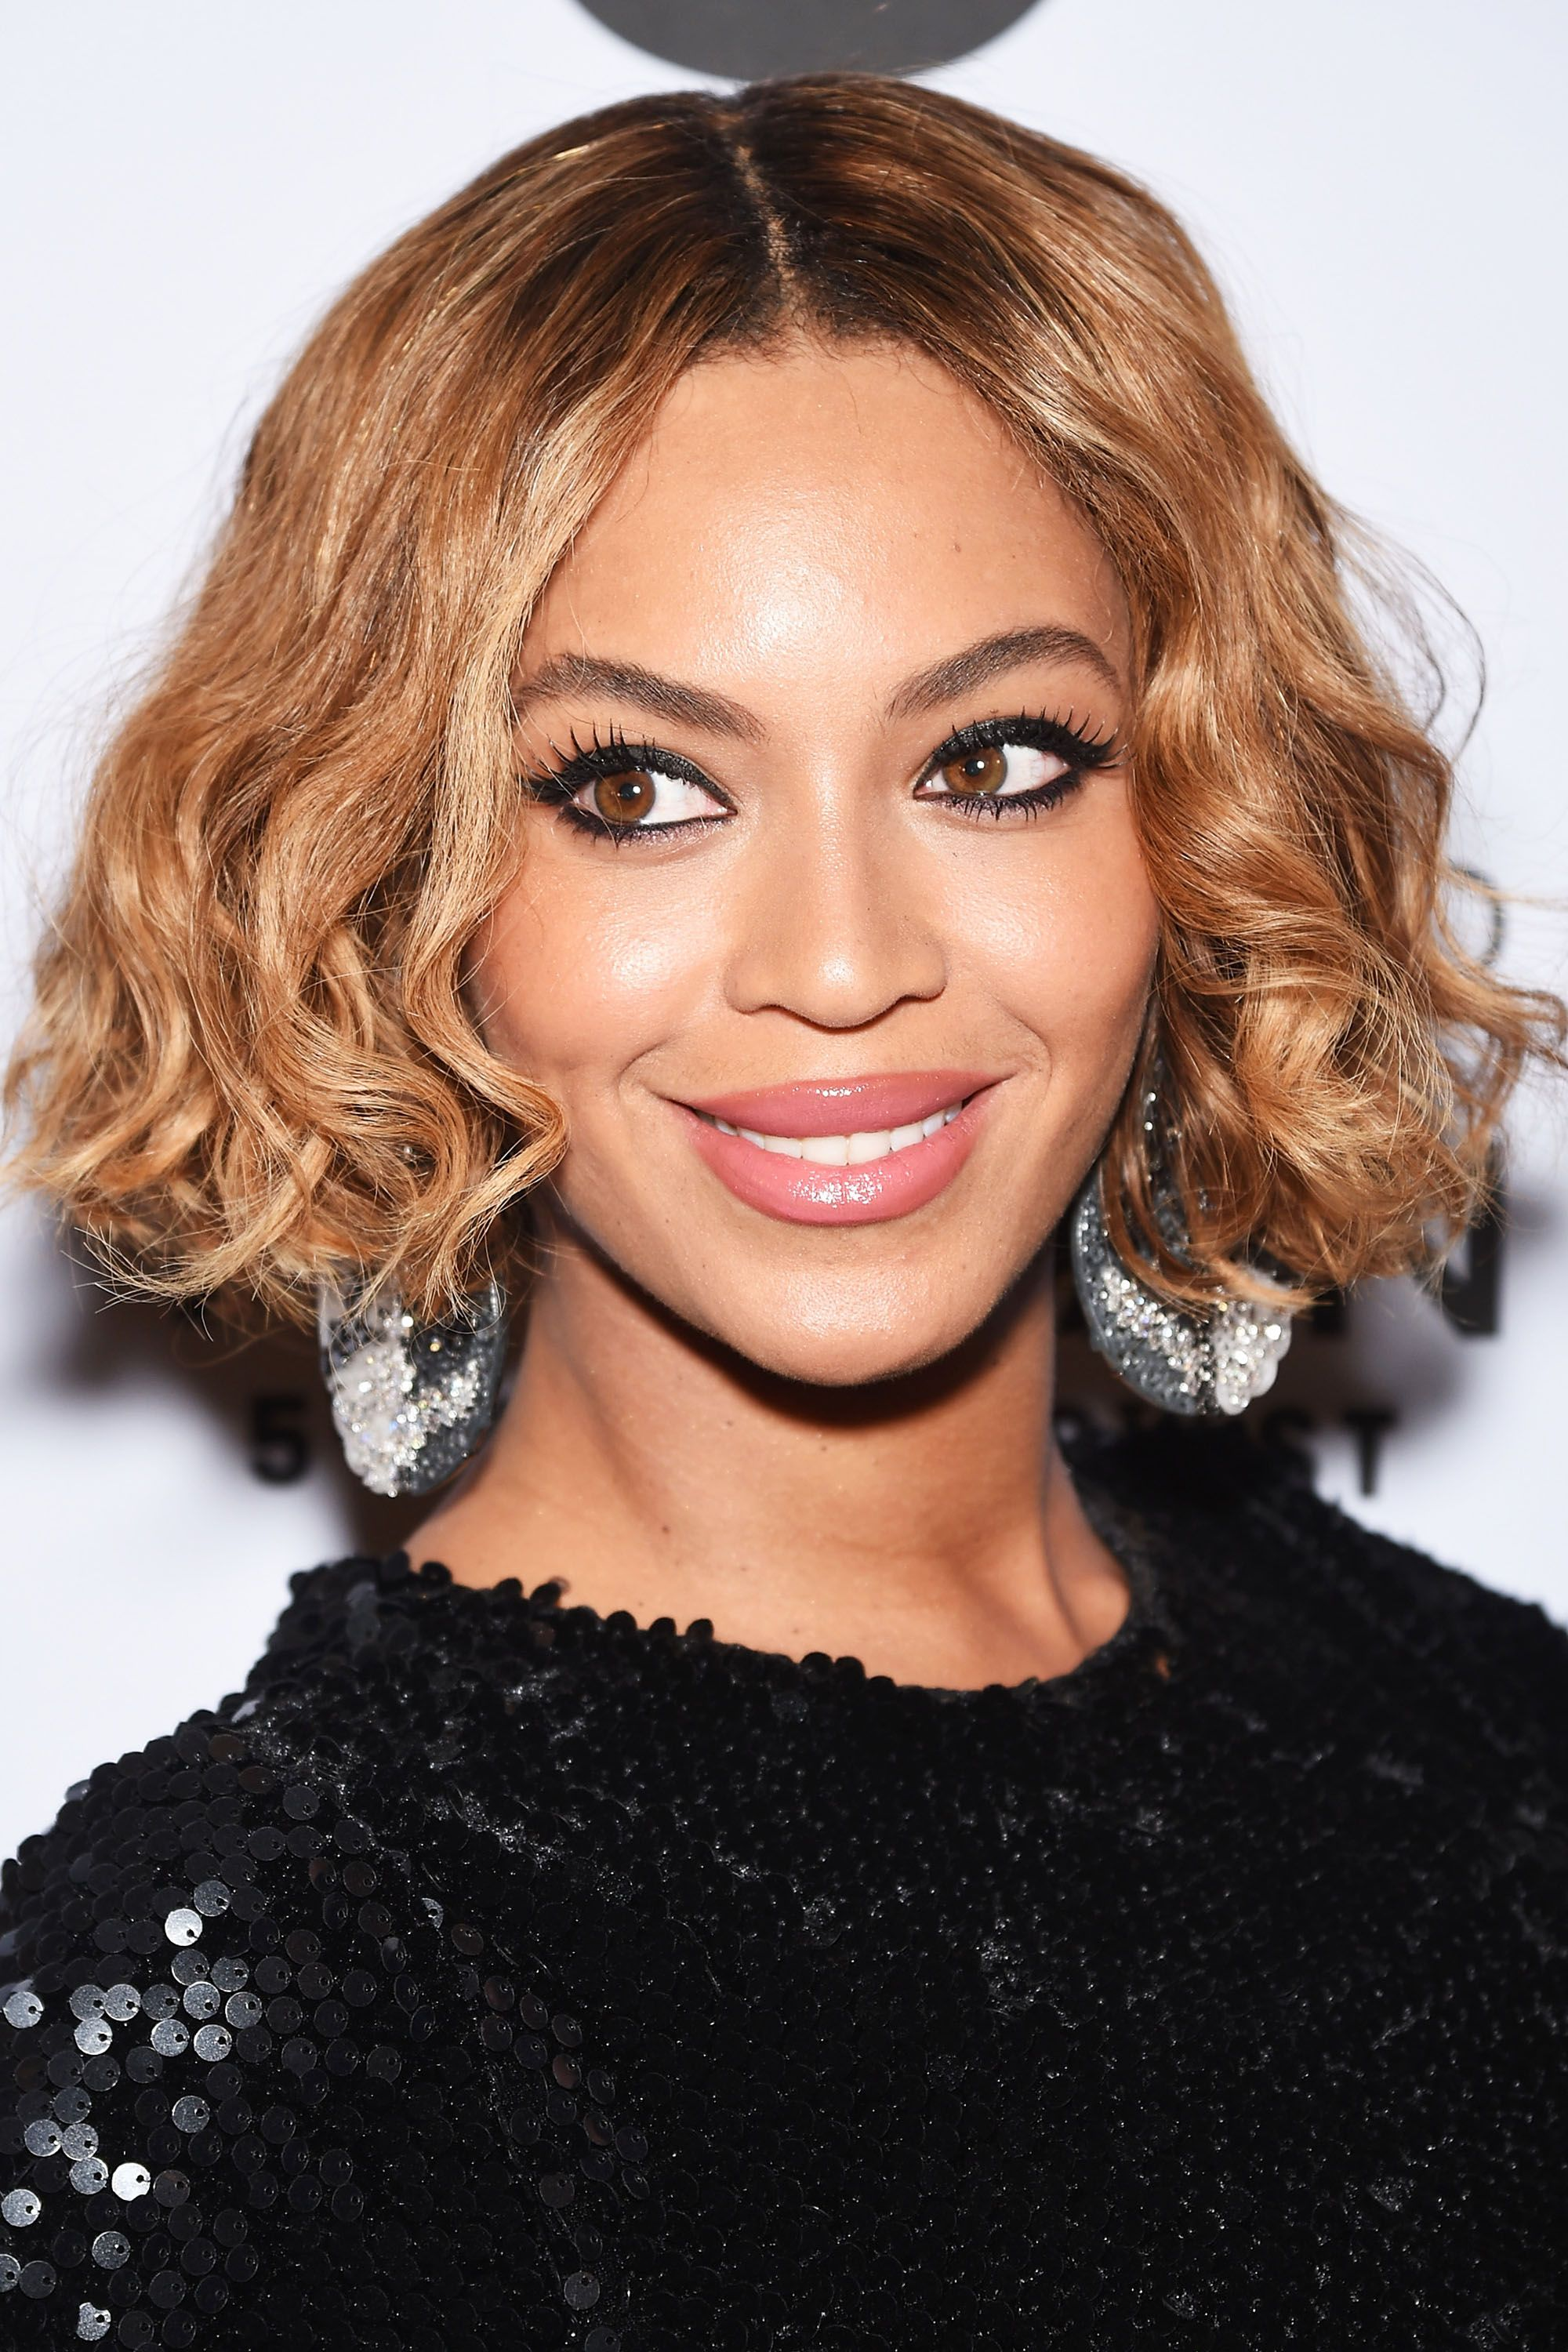 <p>Queen Bey's faded bob swiftly transitions from her dark roots into to a honeyed blonde at the crown of her head. </p>